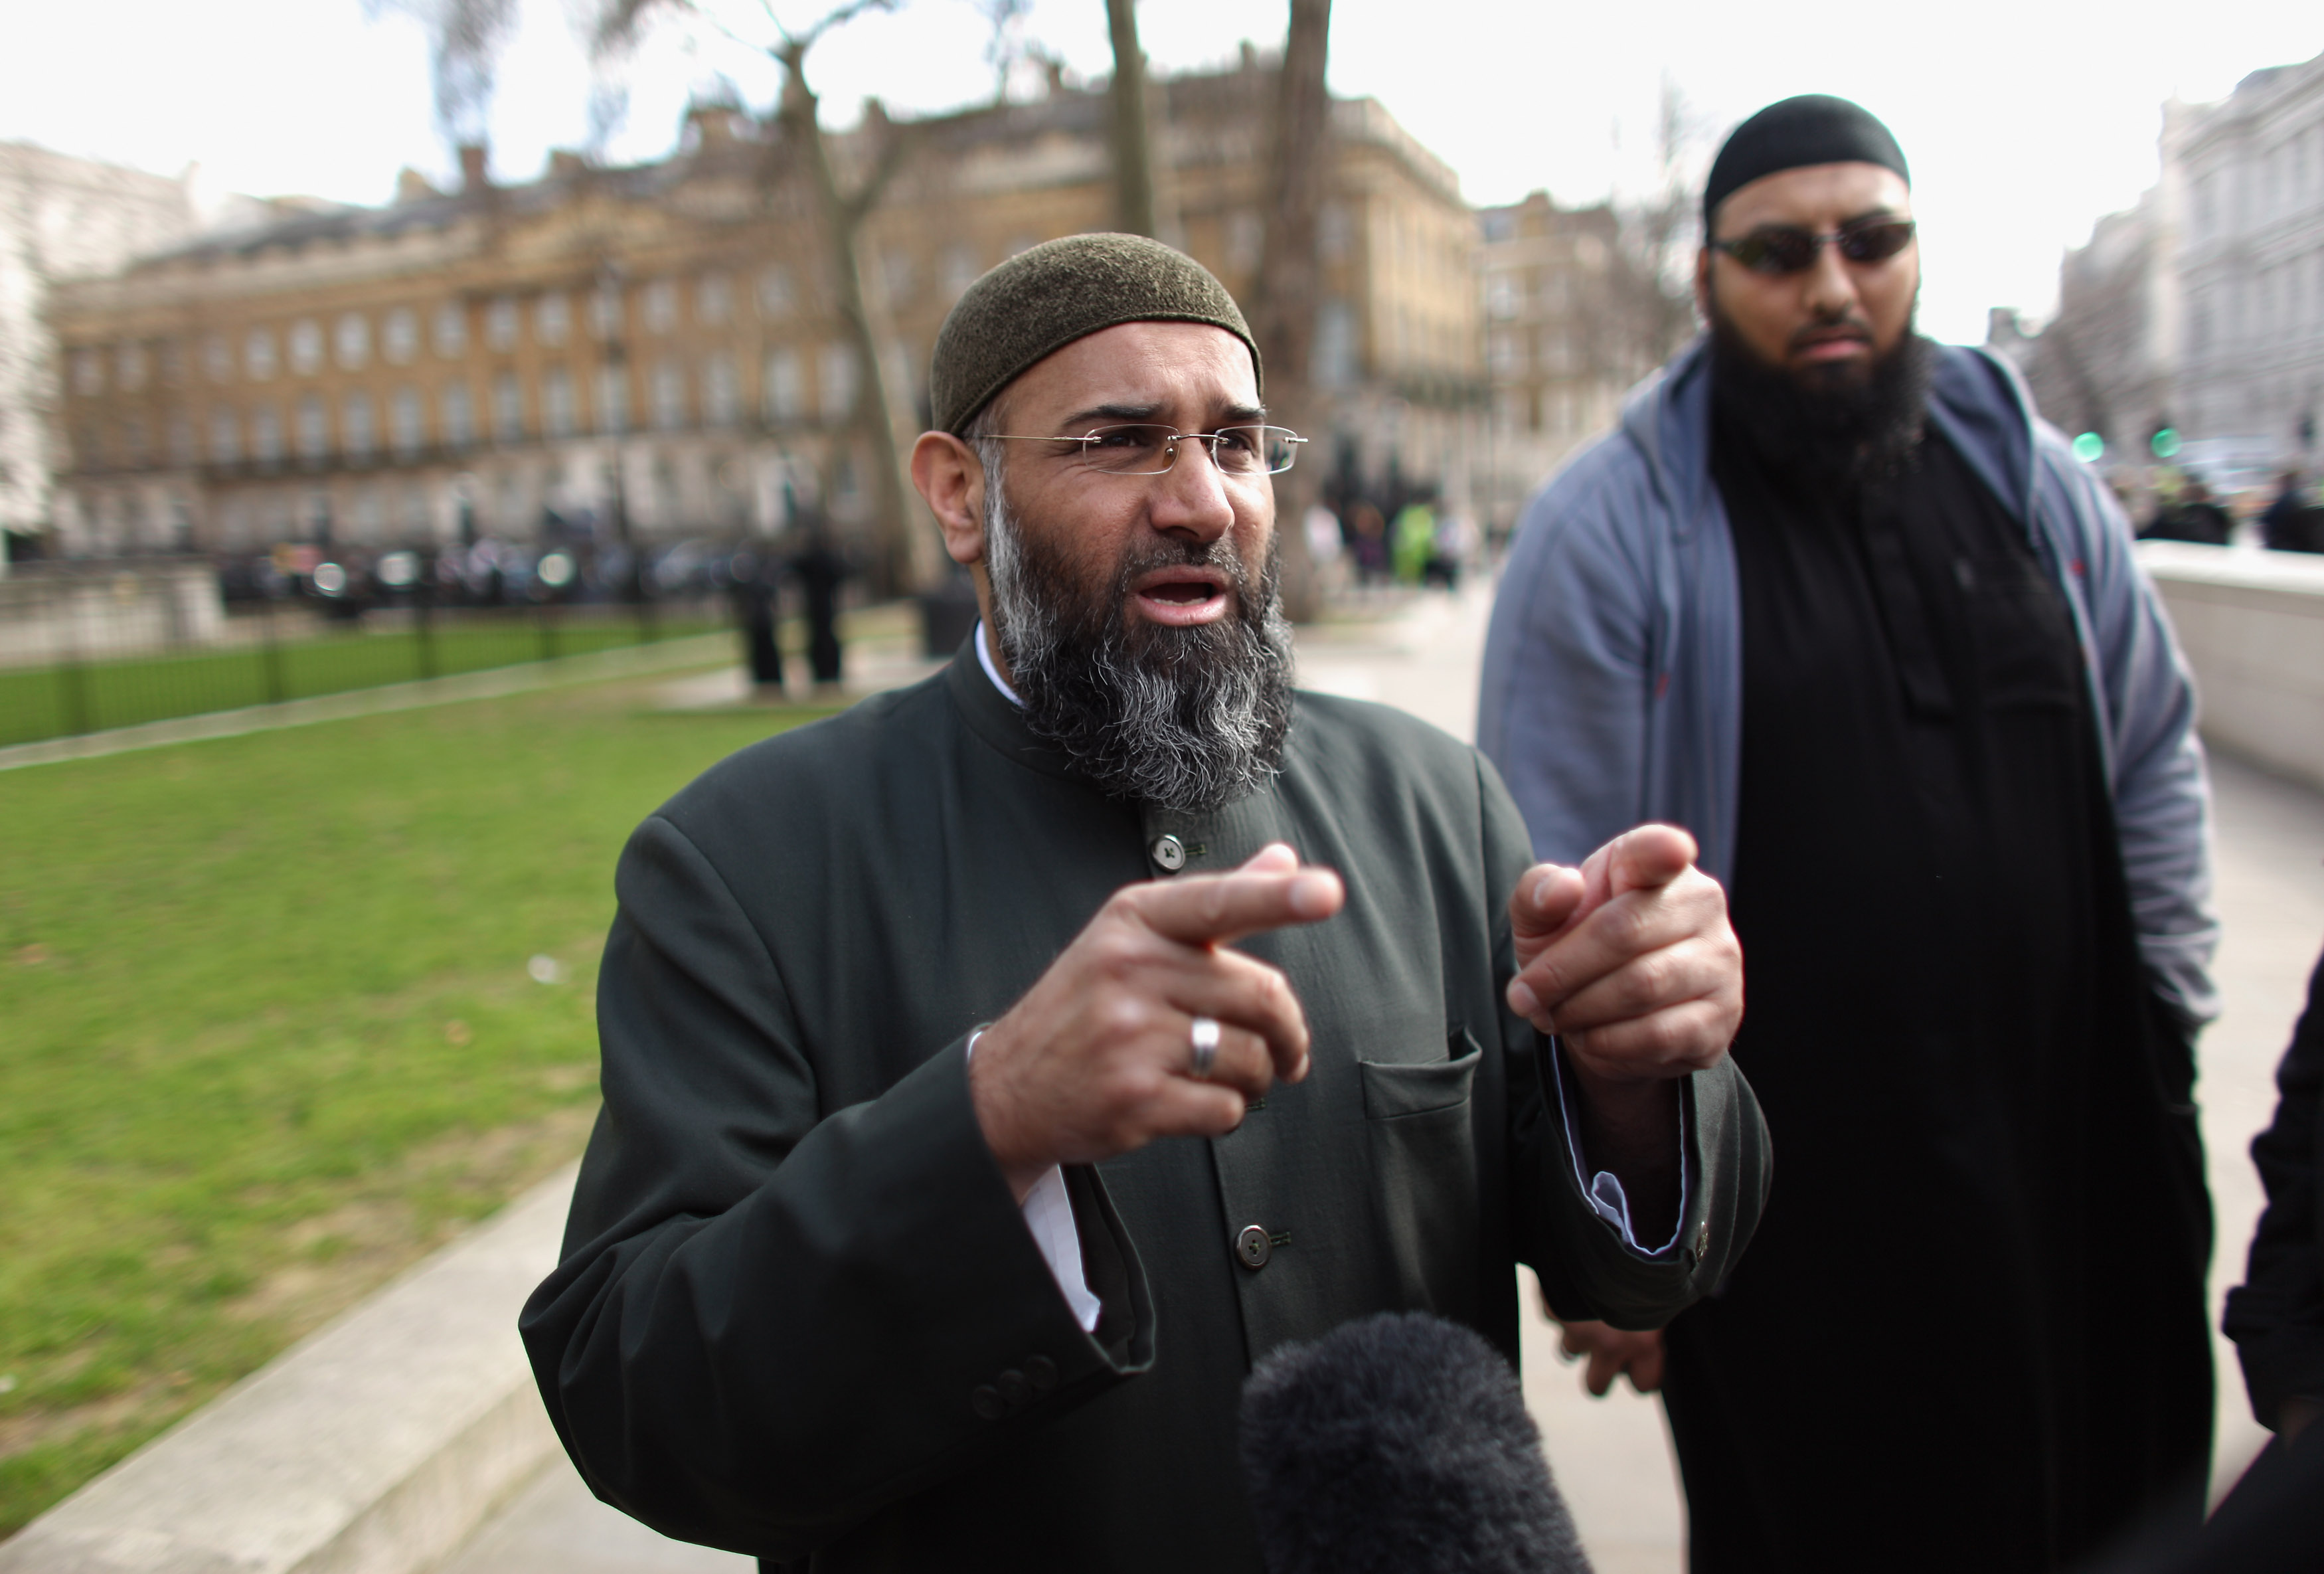 Anjem Choudary gestures